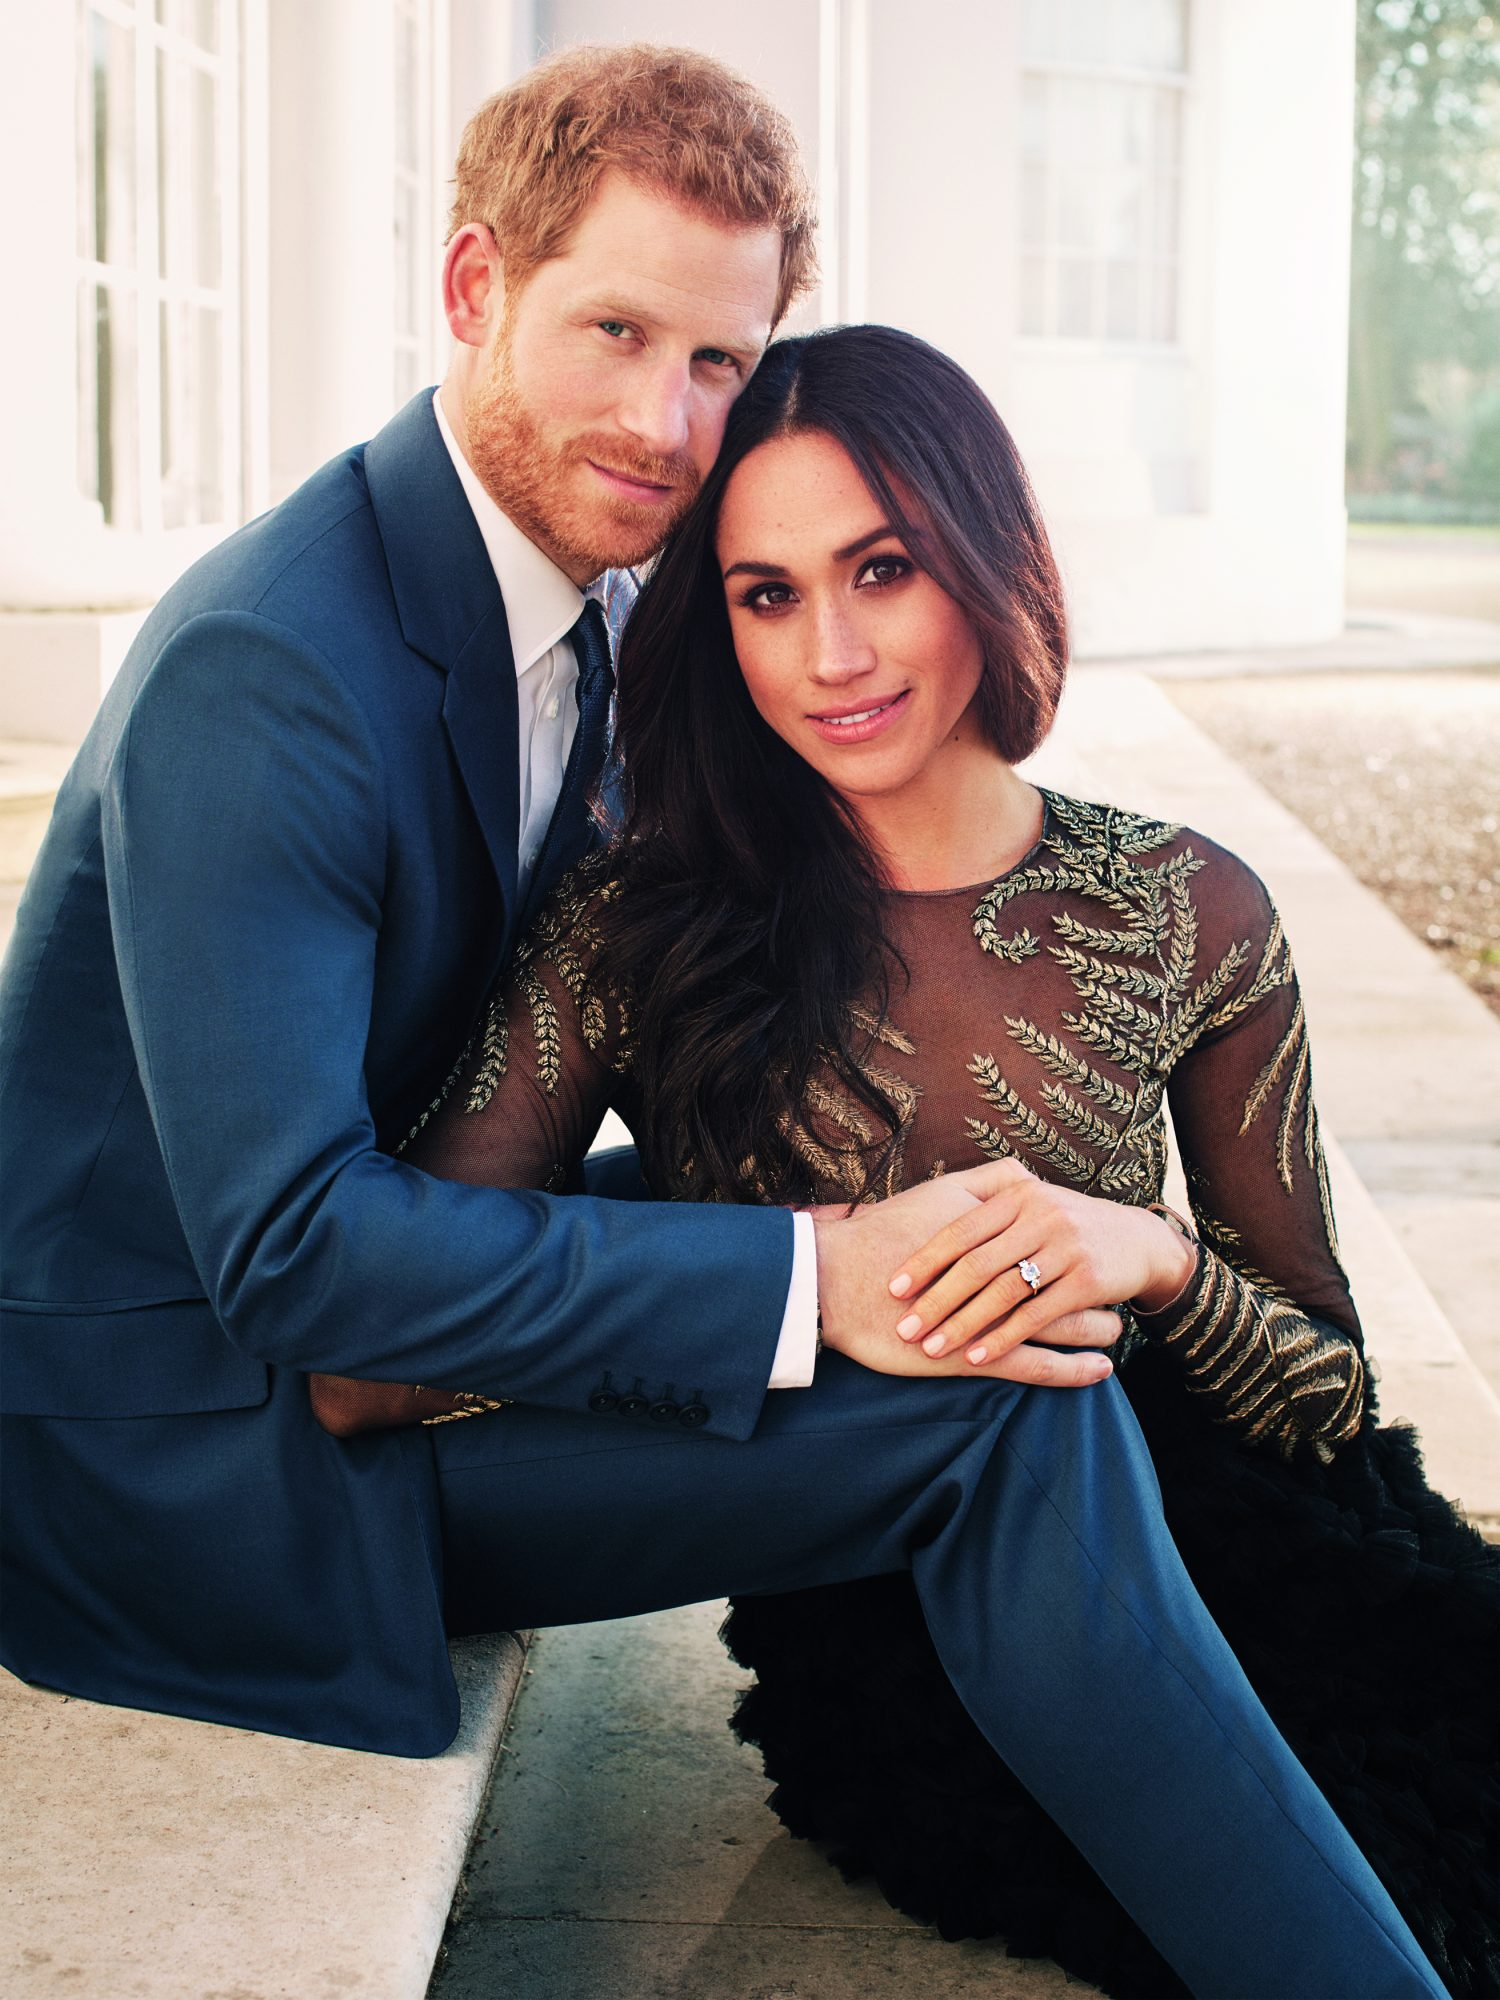 prince-harry-meghan-markle-engagement-photos.jpg